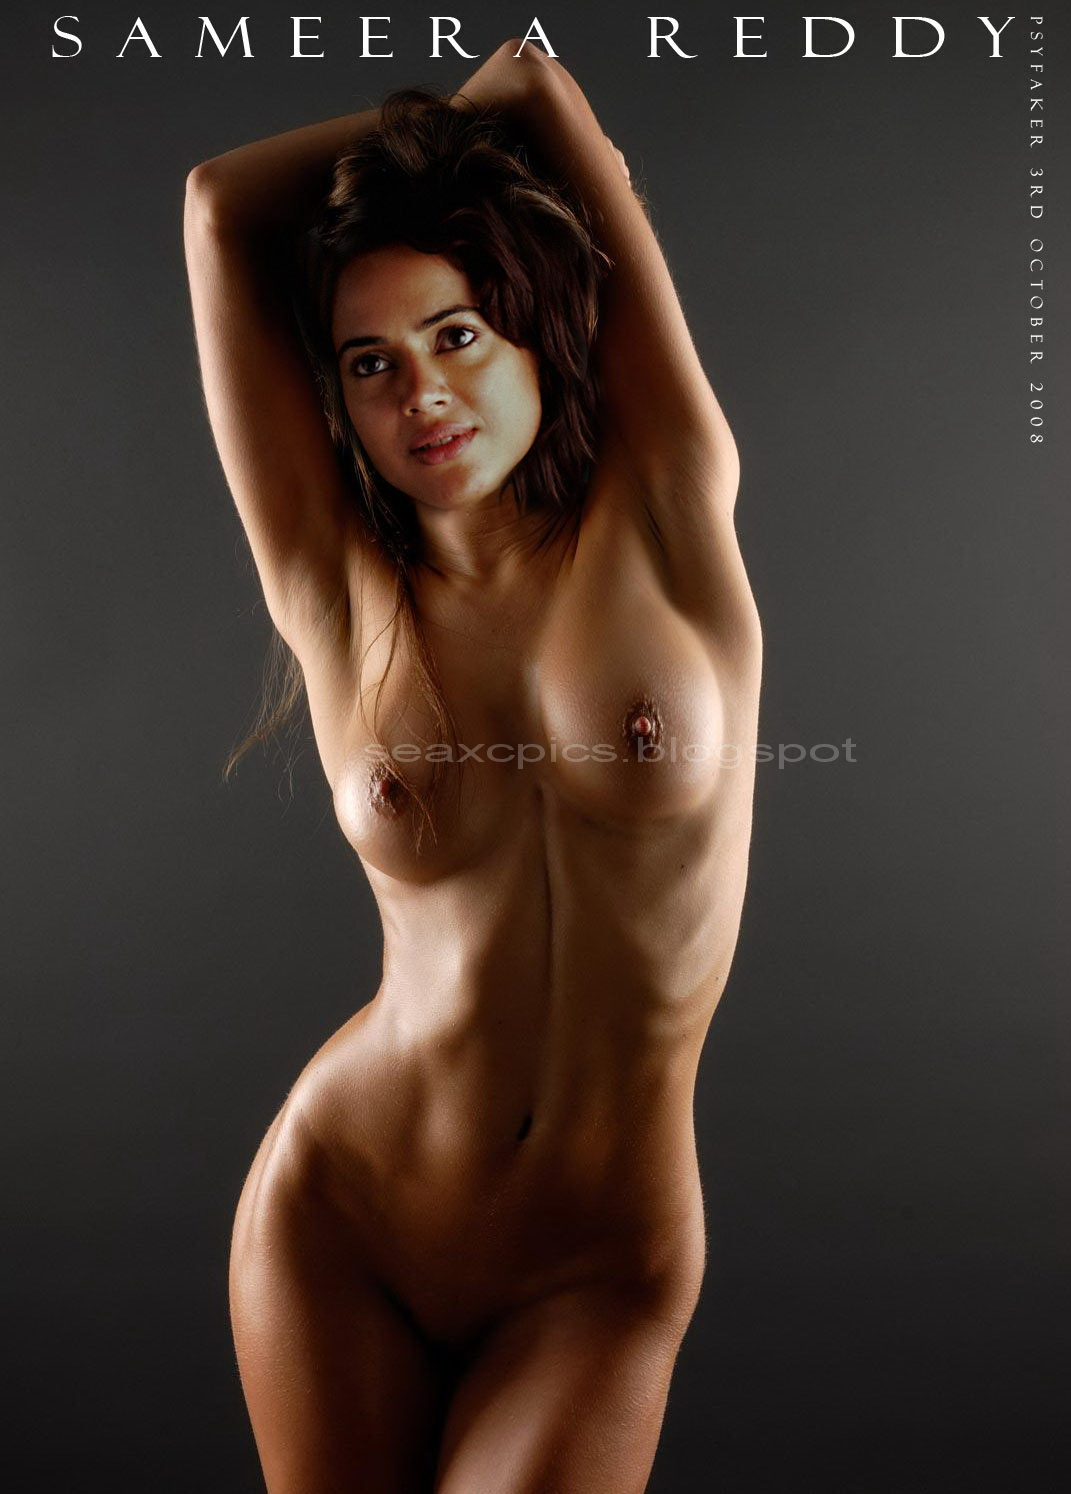 nude photos of sameera reddy